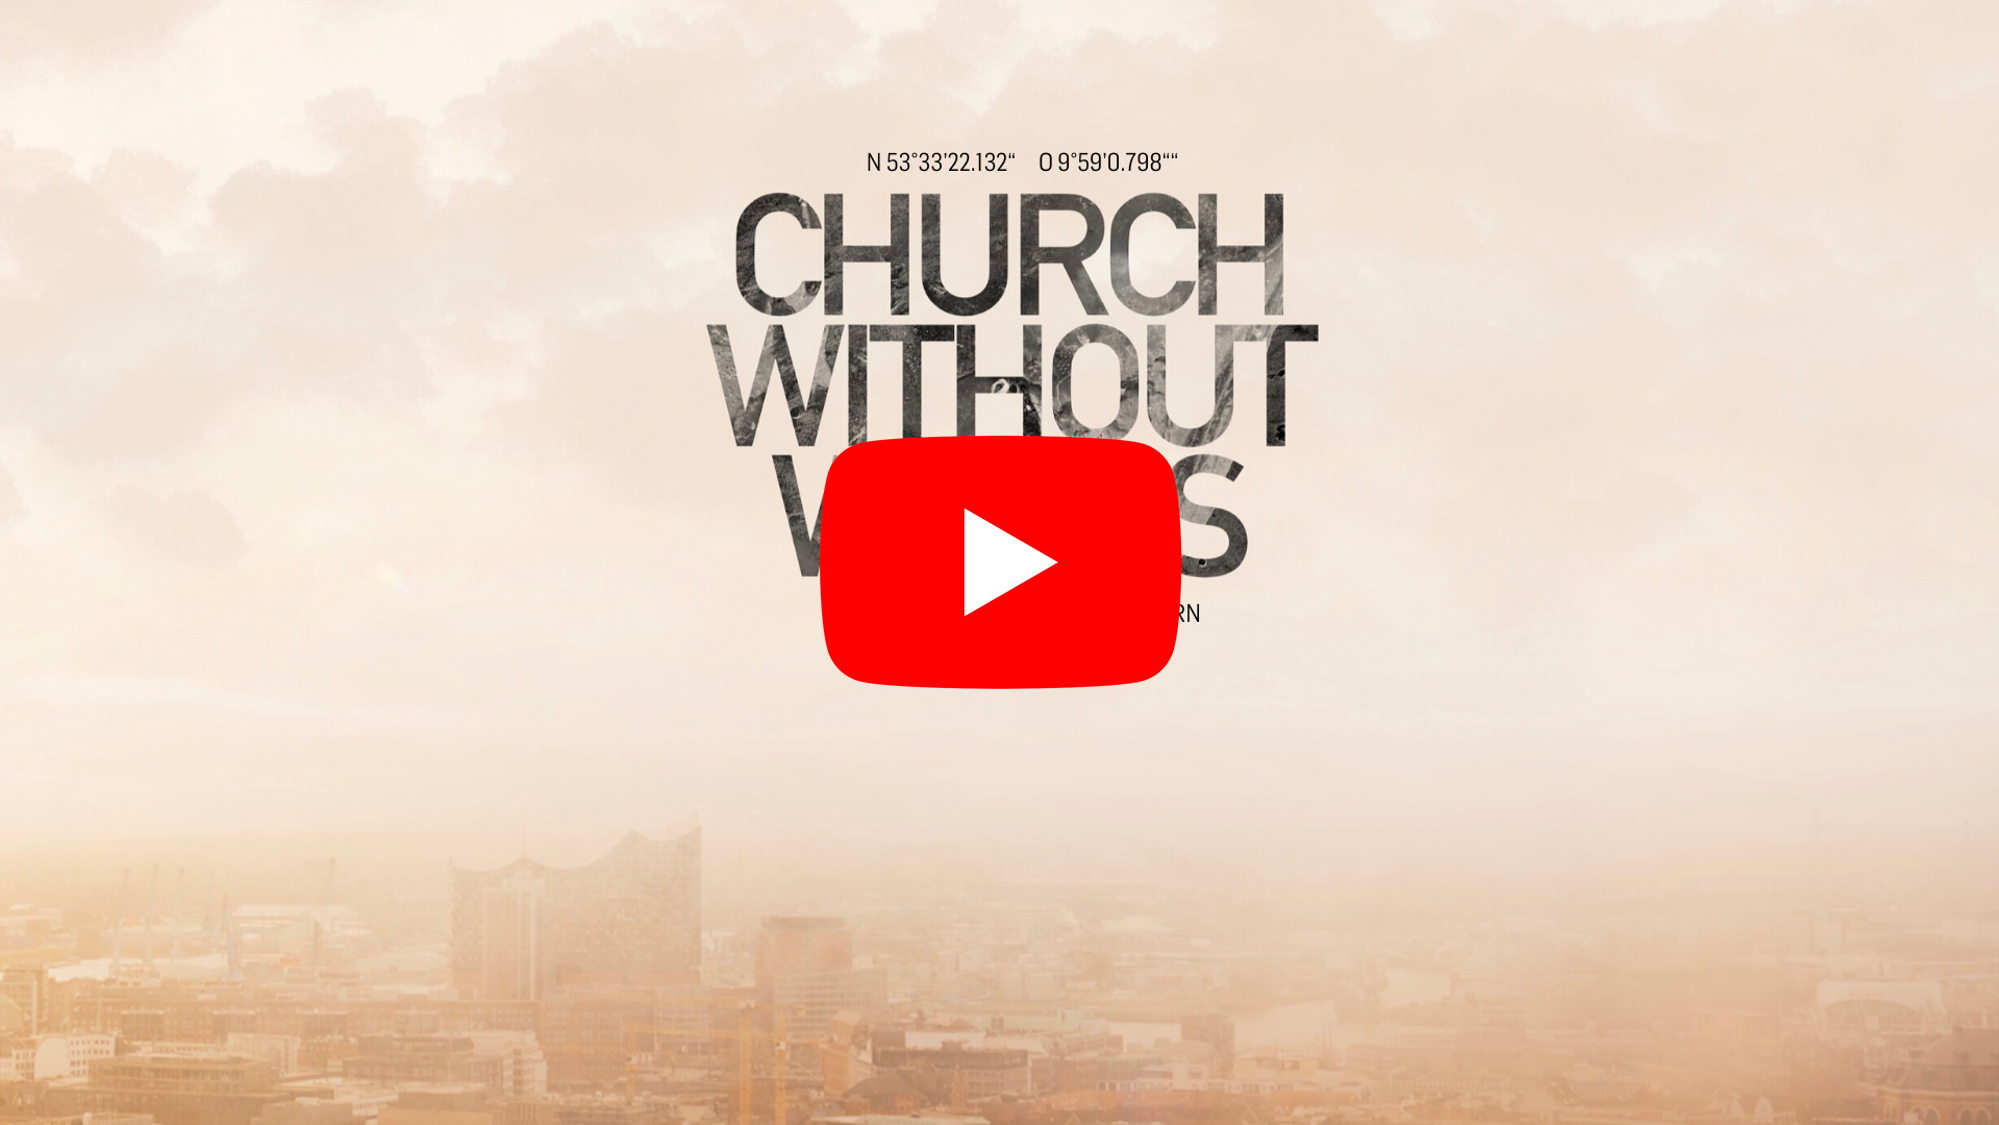 church without walls yt